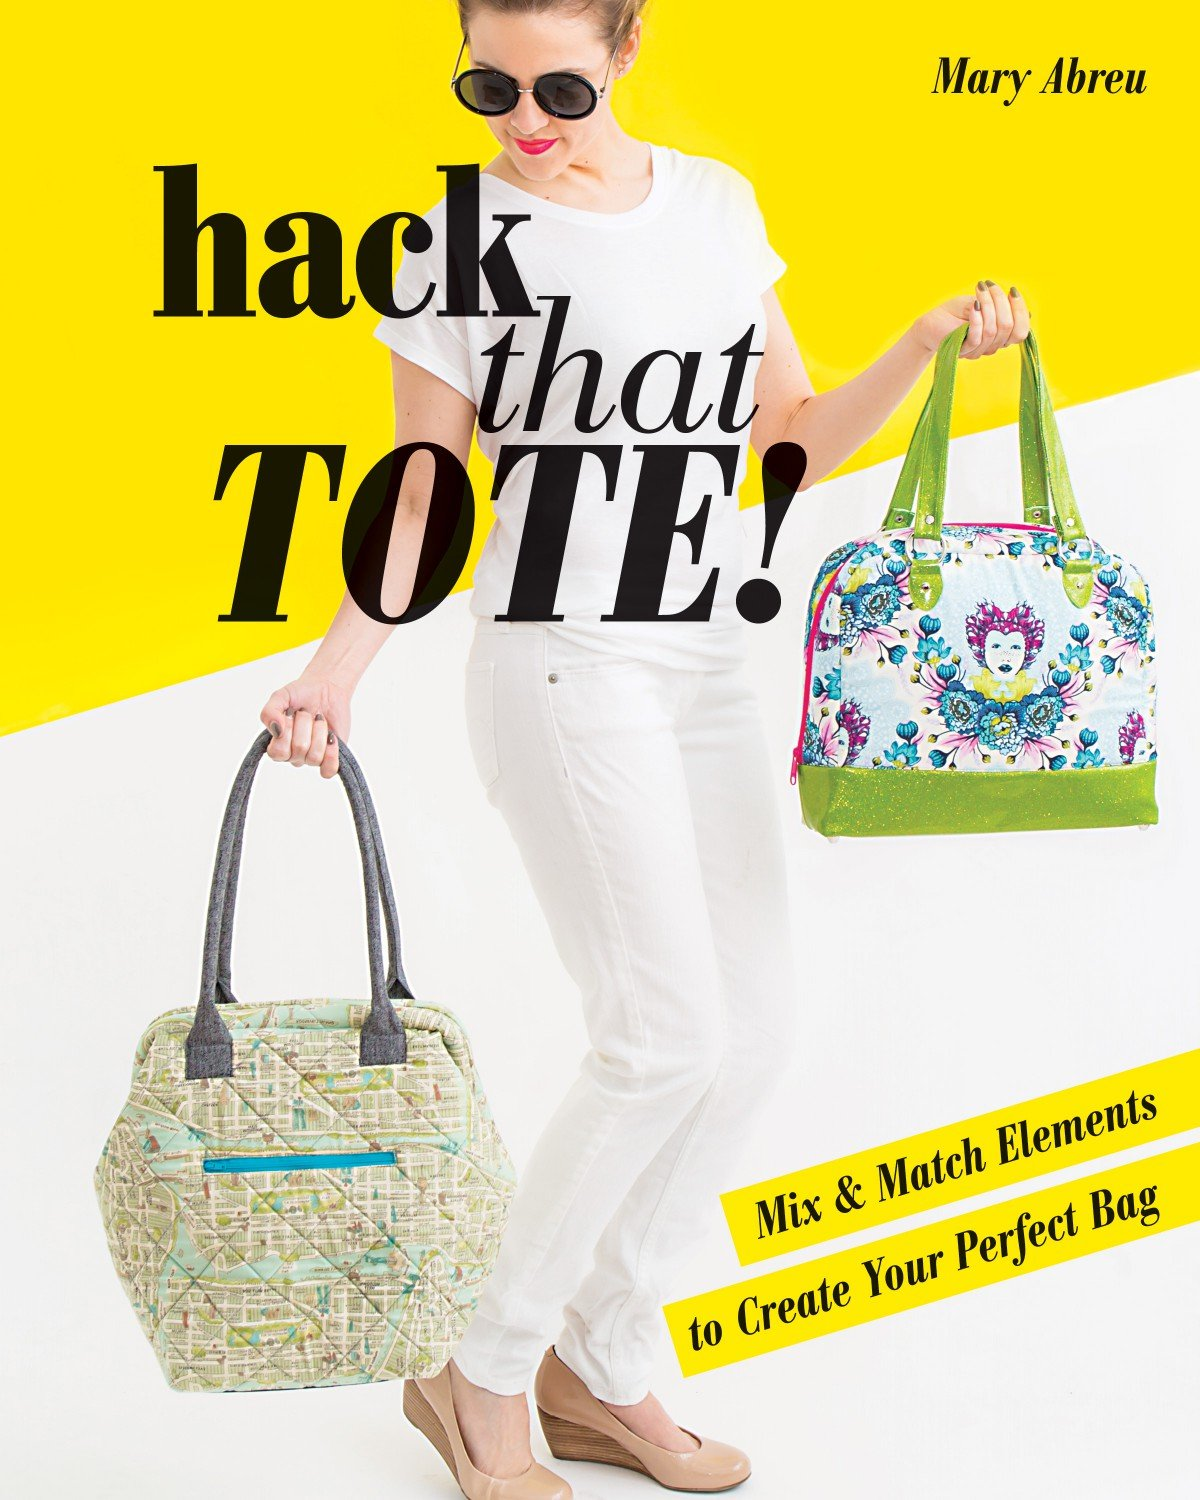 Hack That Tote! *Autographed*